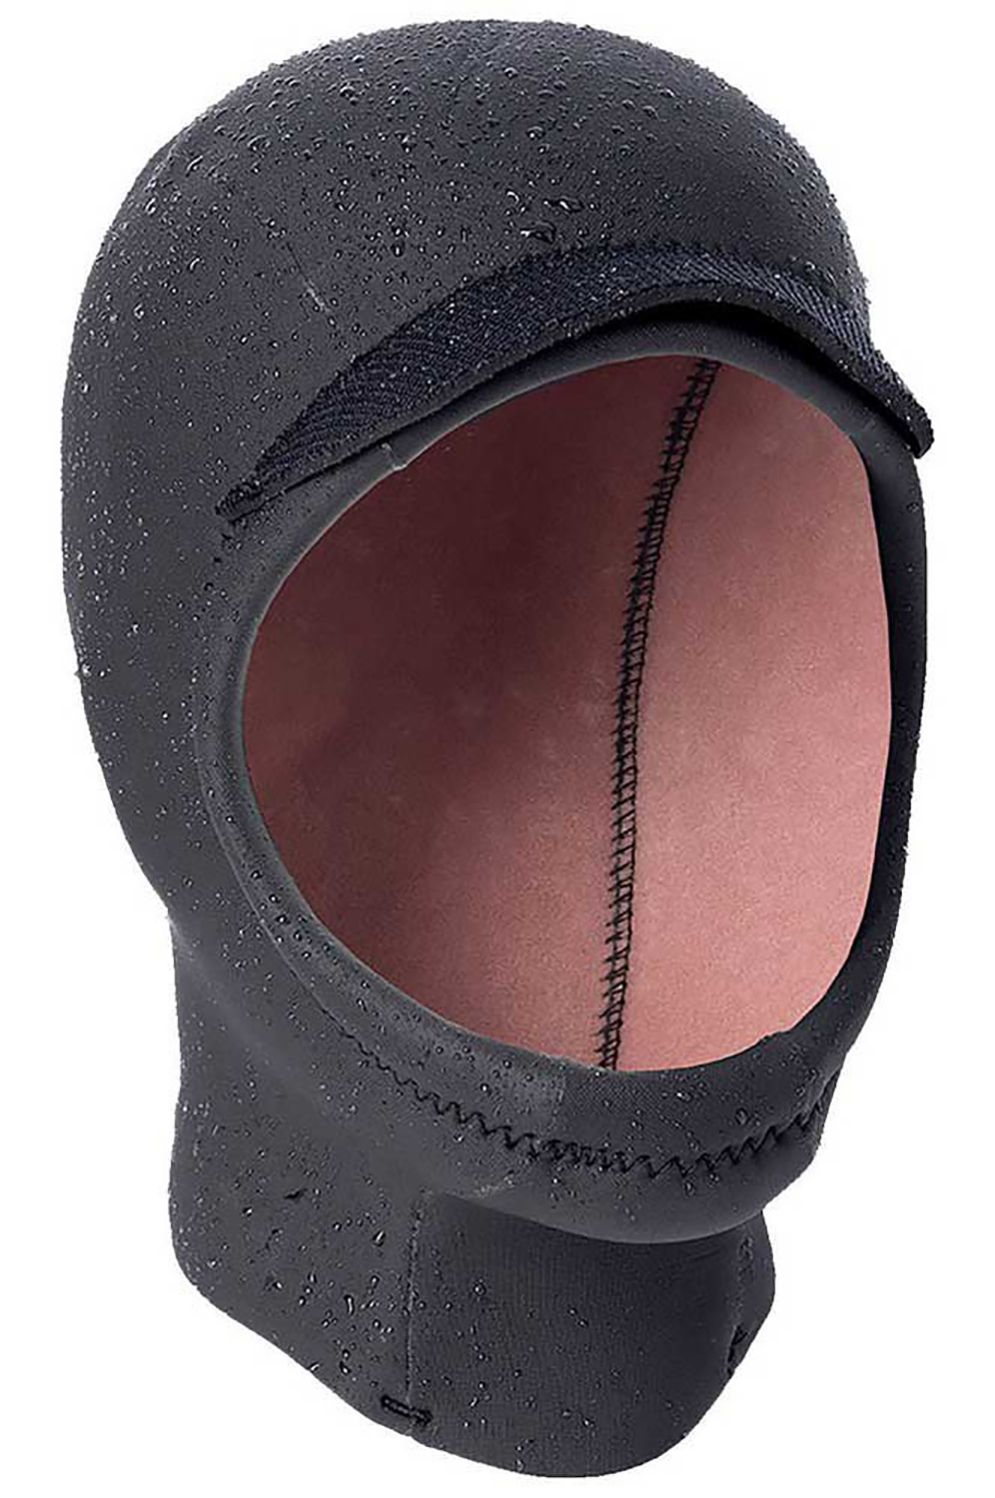 Rip Curl Wetsuit Hoods HEAT SEEKER 3MM OPEN FACE HOOD CHIN CUP Black